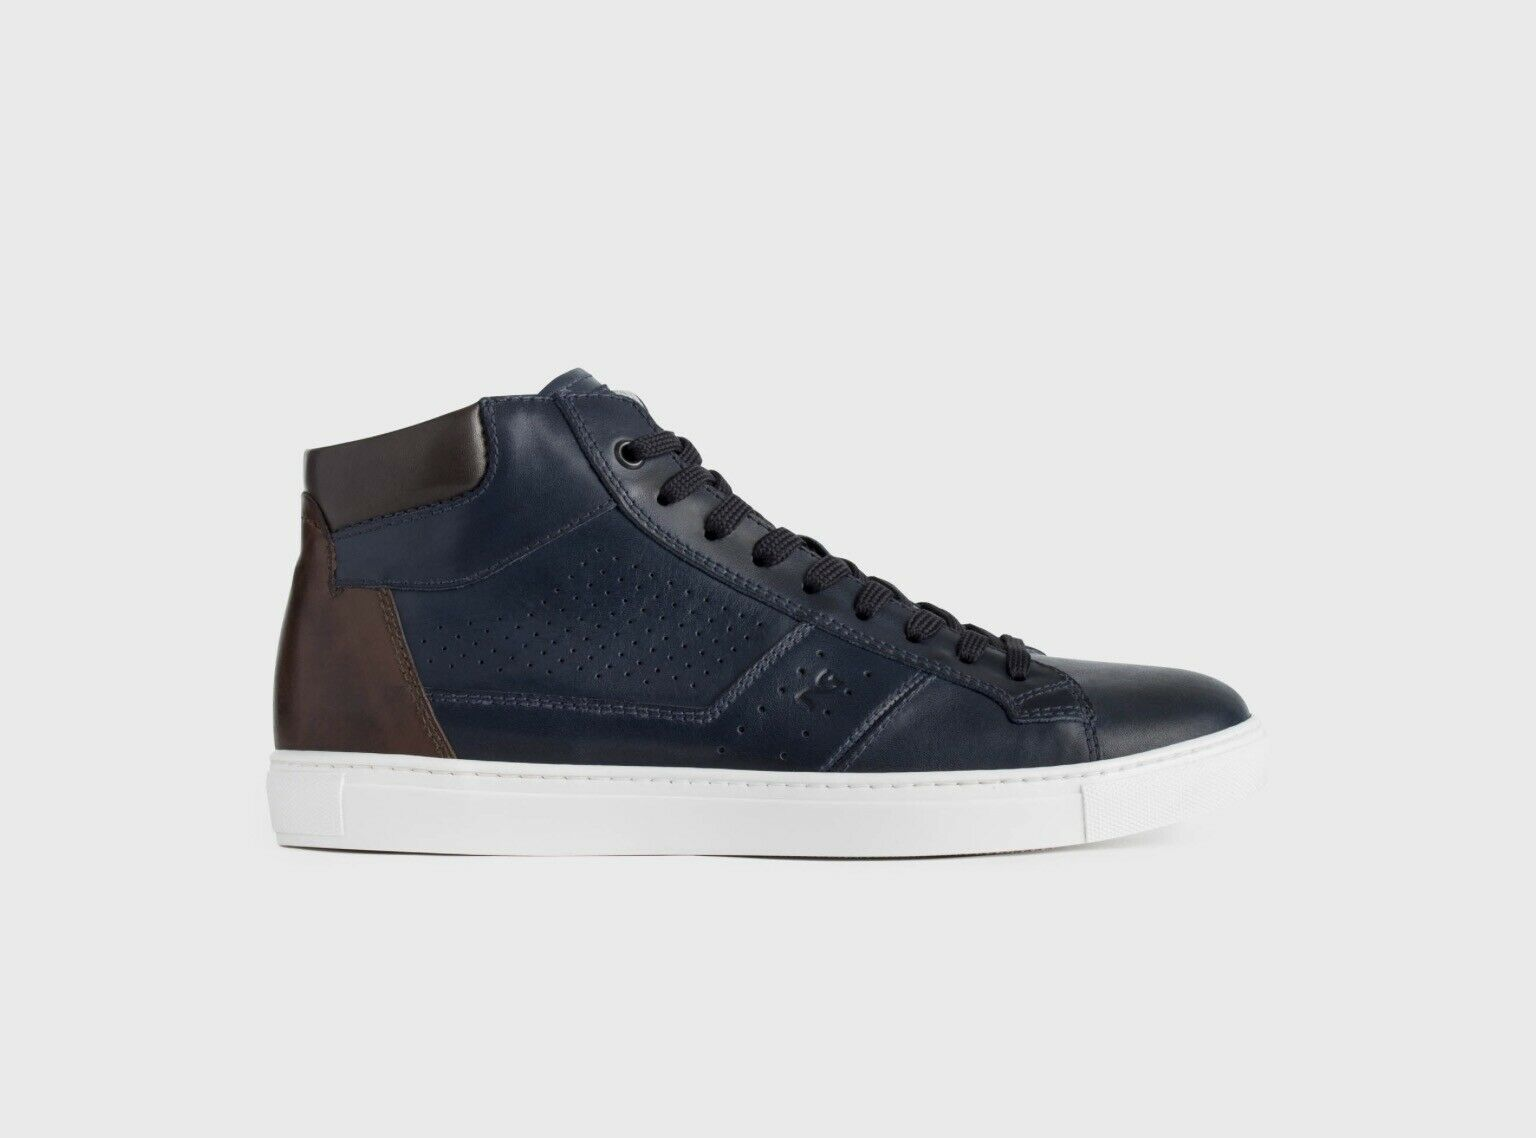 Shoe Sneaker Casual Leather Men New Collection NeroGiardini P900981U Only 40